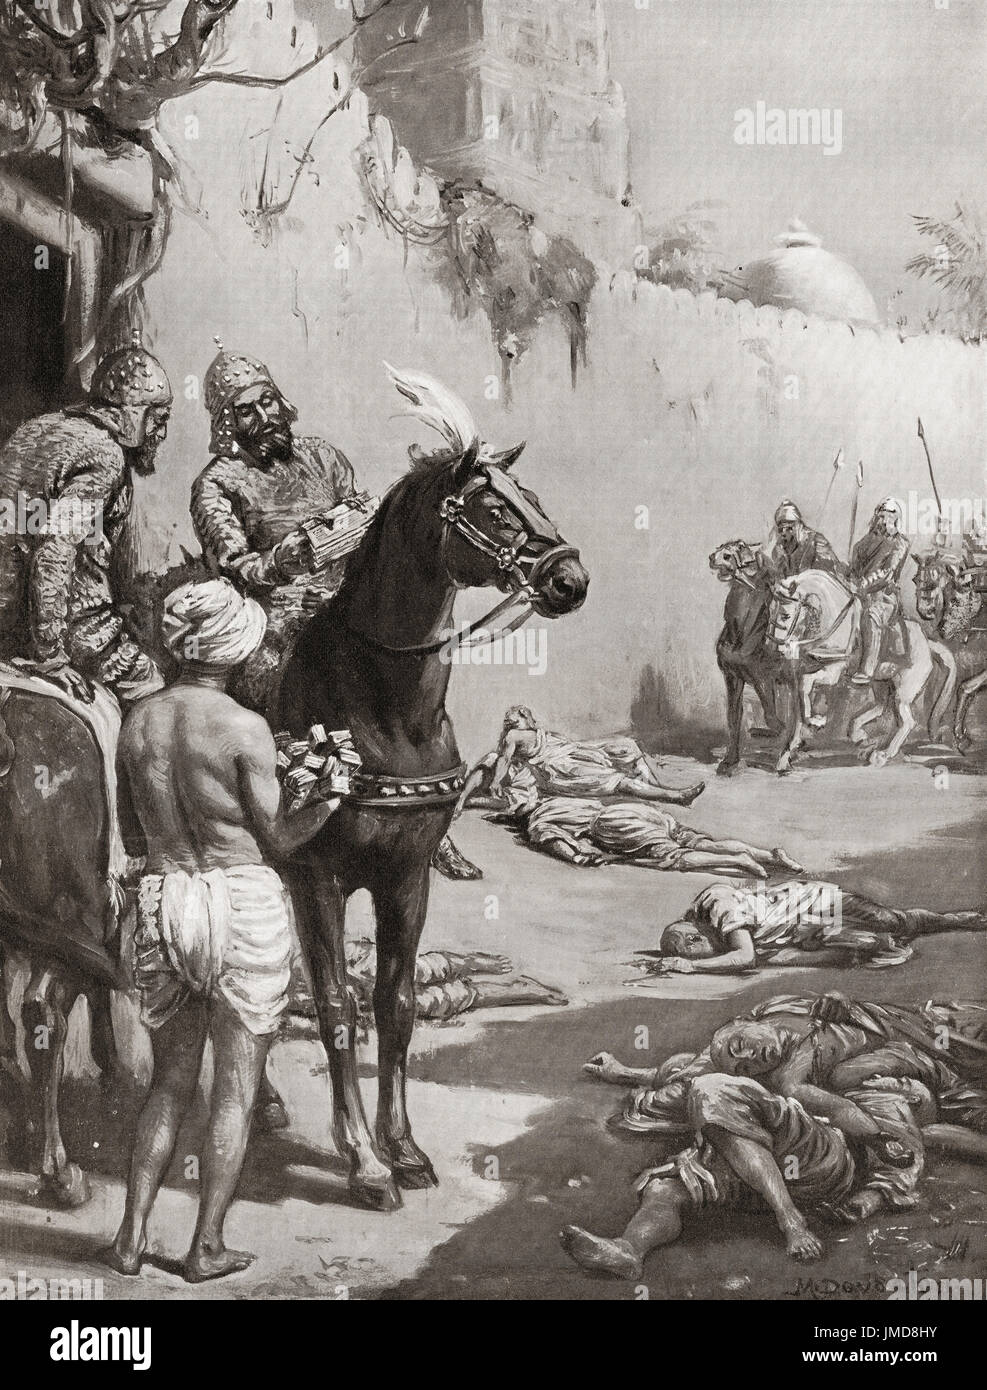 The end of Buddhist Monks in India in 1193 when Muhammad bin Bakhtiyar Khilji invaded  Bihar, India and massacred them all.  Ikhtiyar al-Din Muhammad bin Bakhtiyar Khilji, aka Malik Ghazi Ikhtiyar 'l-Din Muhammad Bakhtiyar Khilji, Muhammad Bakhtiyar Khilji or simply Bakhtiyar Khilji (died 1206). Turkic  military general.  After the painting by Margaret Dovaston (1884-1954).   From Hutchinson's History of the Nations, published 1915. - Stock Image